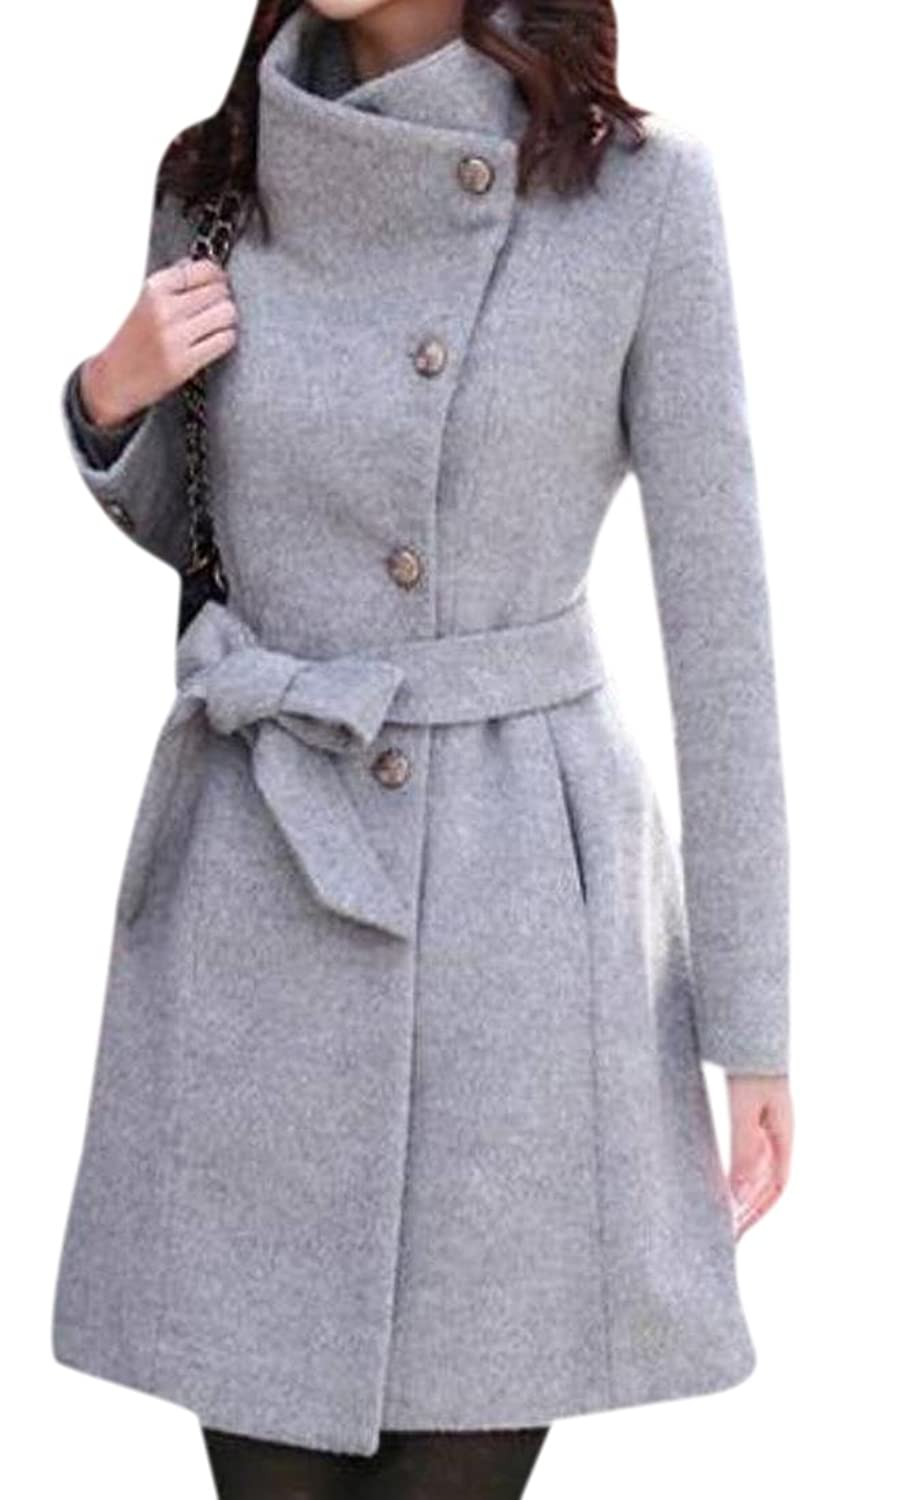 Abetteric Women's Woolen Elegant Long Sleeve Overcoat Parka Outwear